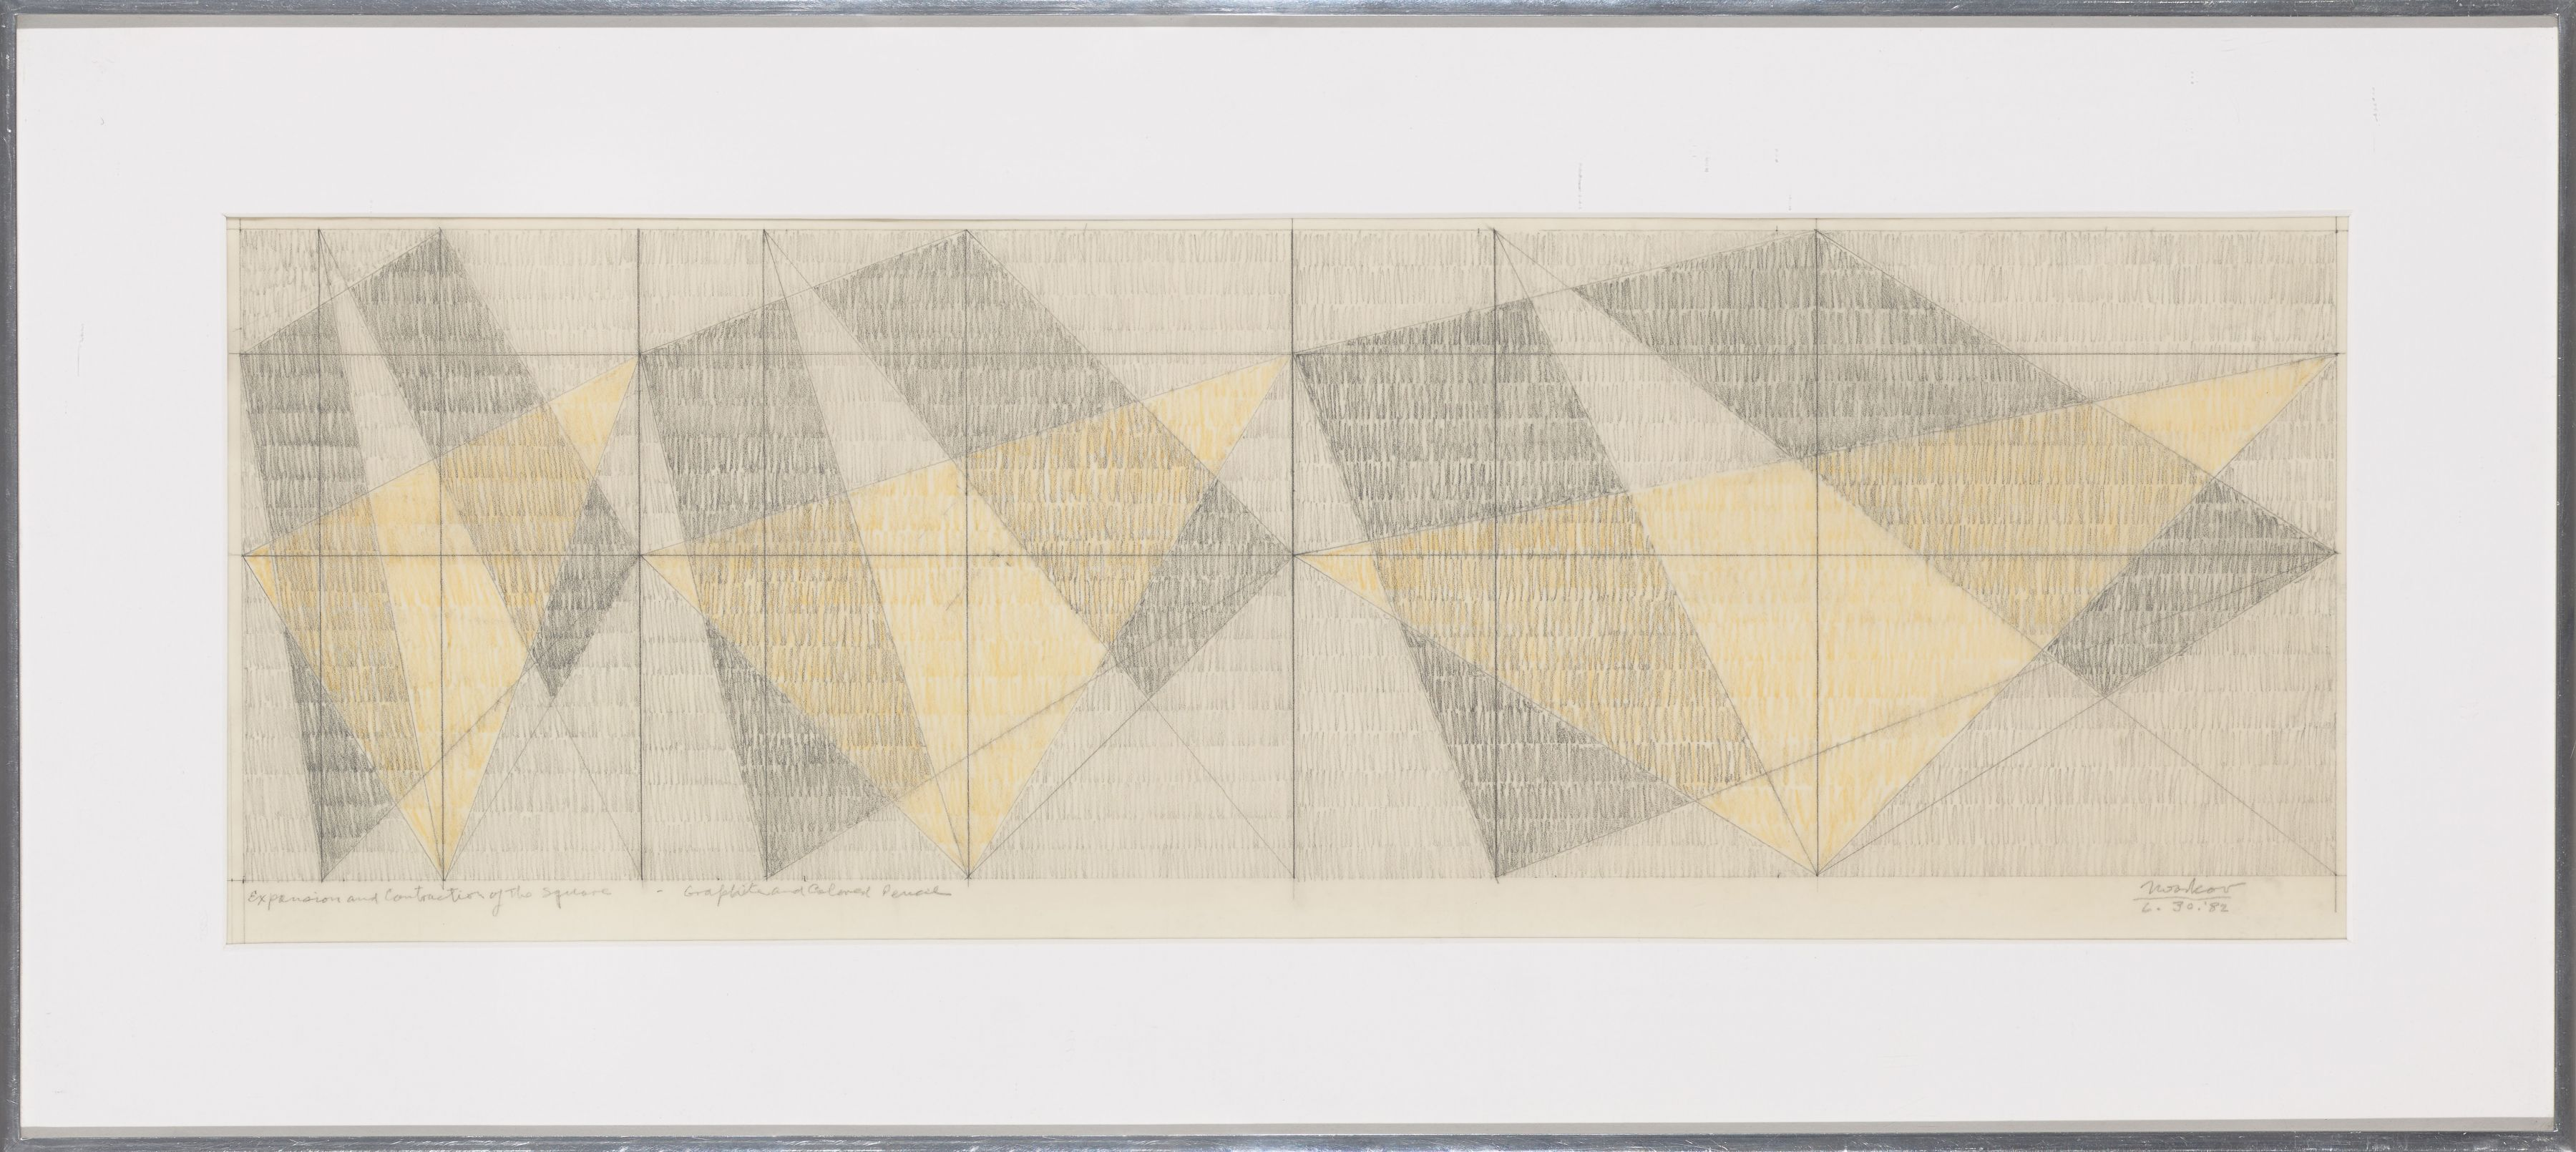 Expansion and Contraction of the Square, 1982, Graphite and colored pencil on vellum